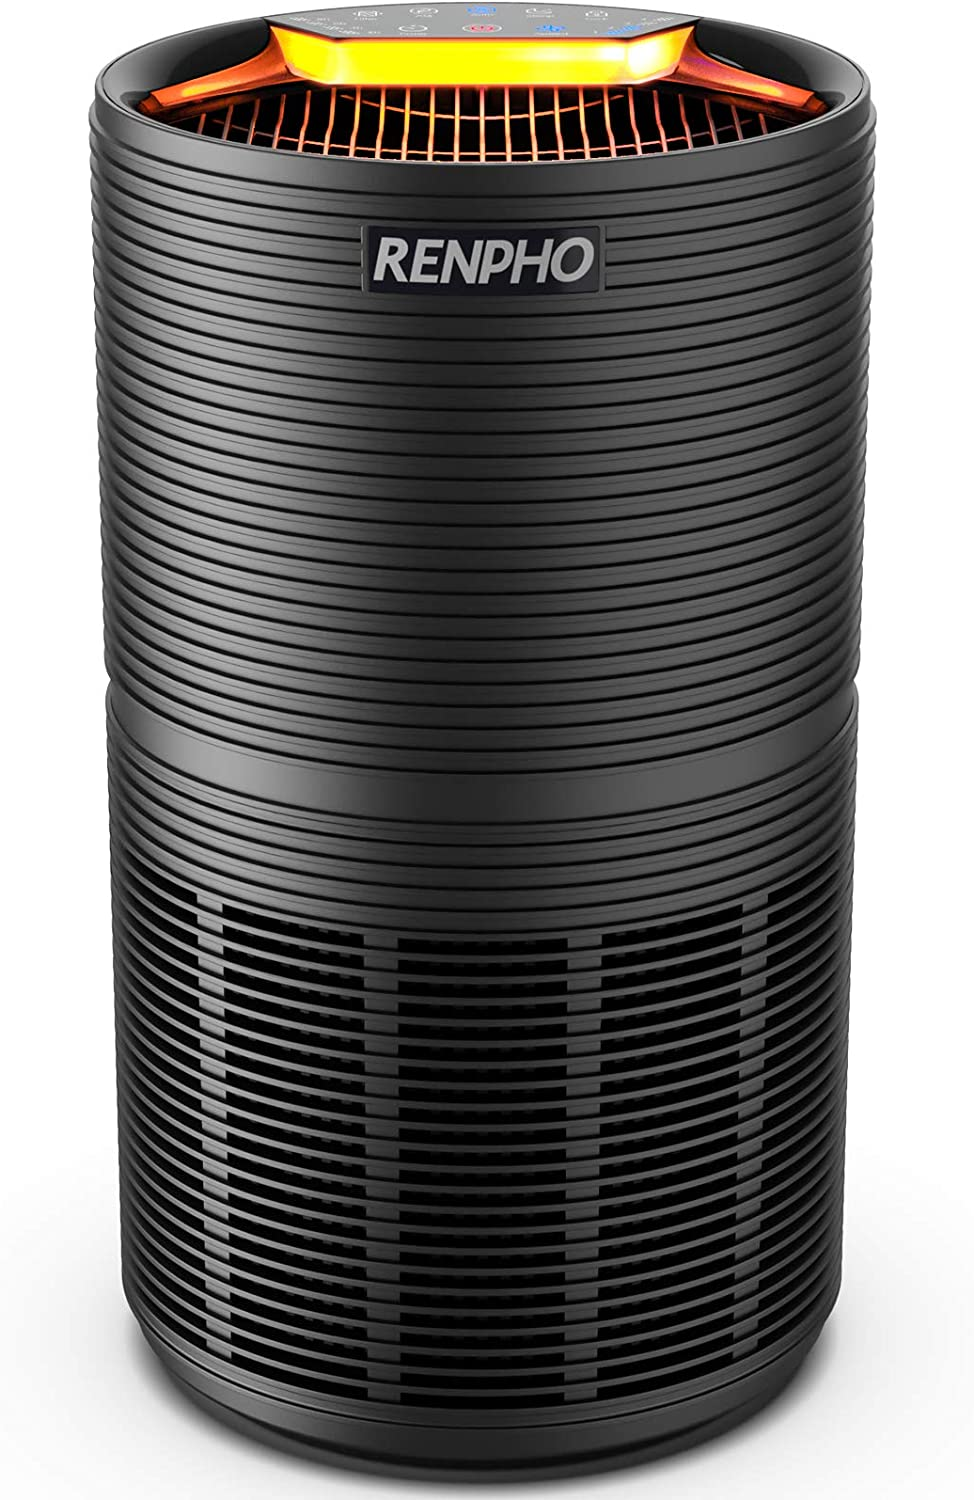 RENPHO Air Purifier HEPA for Home Large Room 480 SQ.FT with H13 True HEPA Filter, Air Purifier for Smoke, Allergies and Pet Dander, Eliminates Mold, Pollen, Dust, Odor, Quiet Sleep Mode, Ozone Free